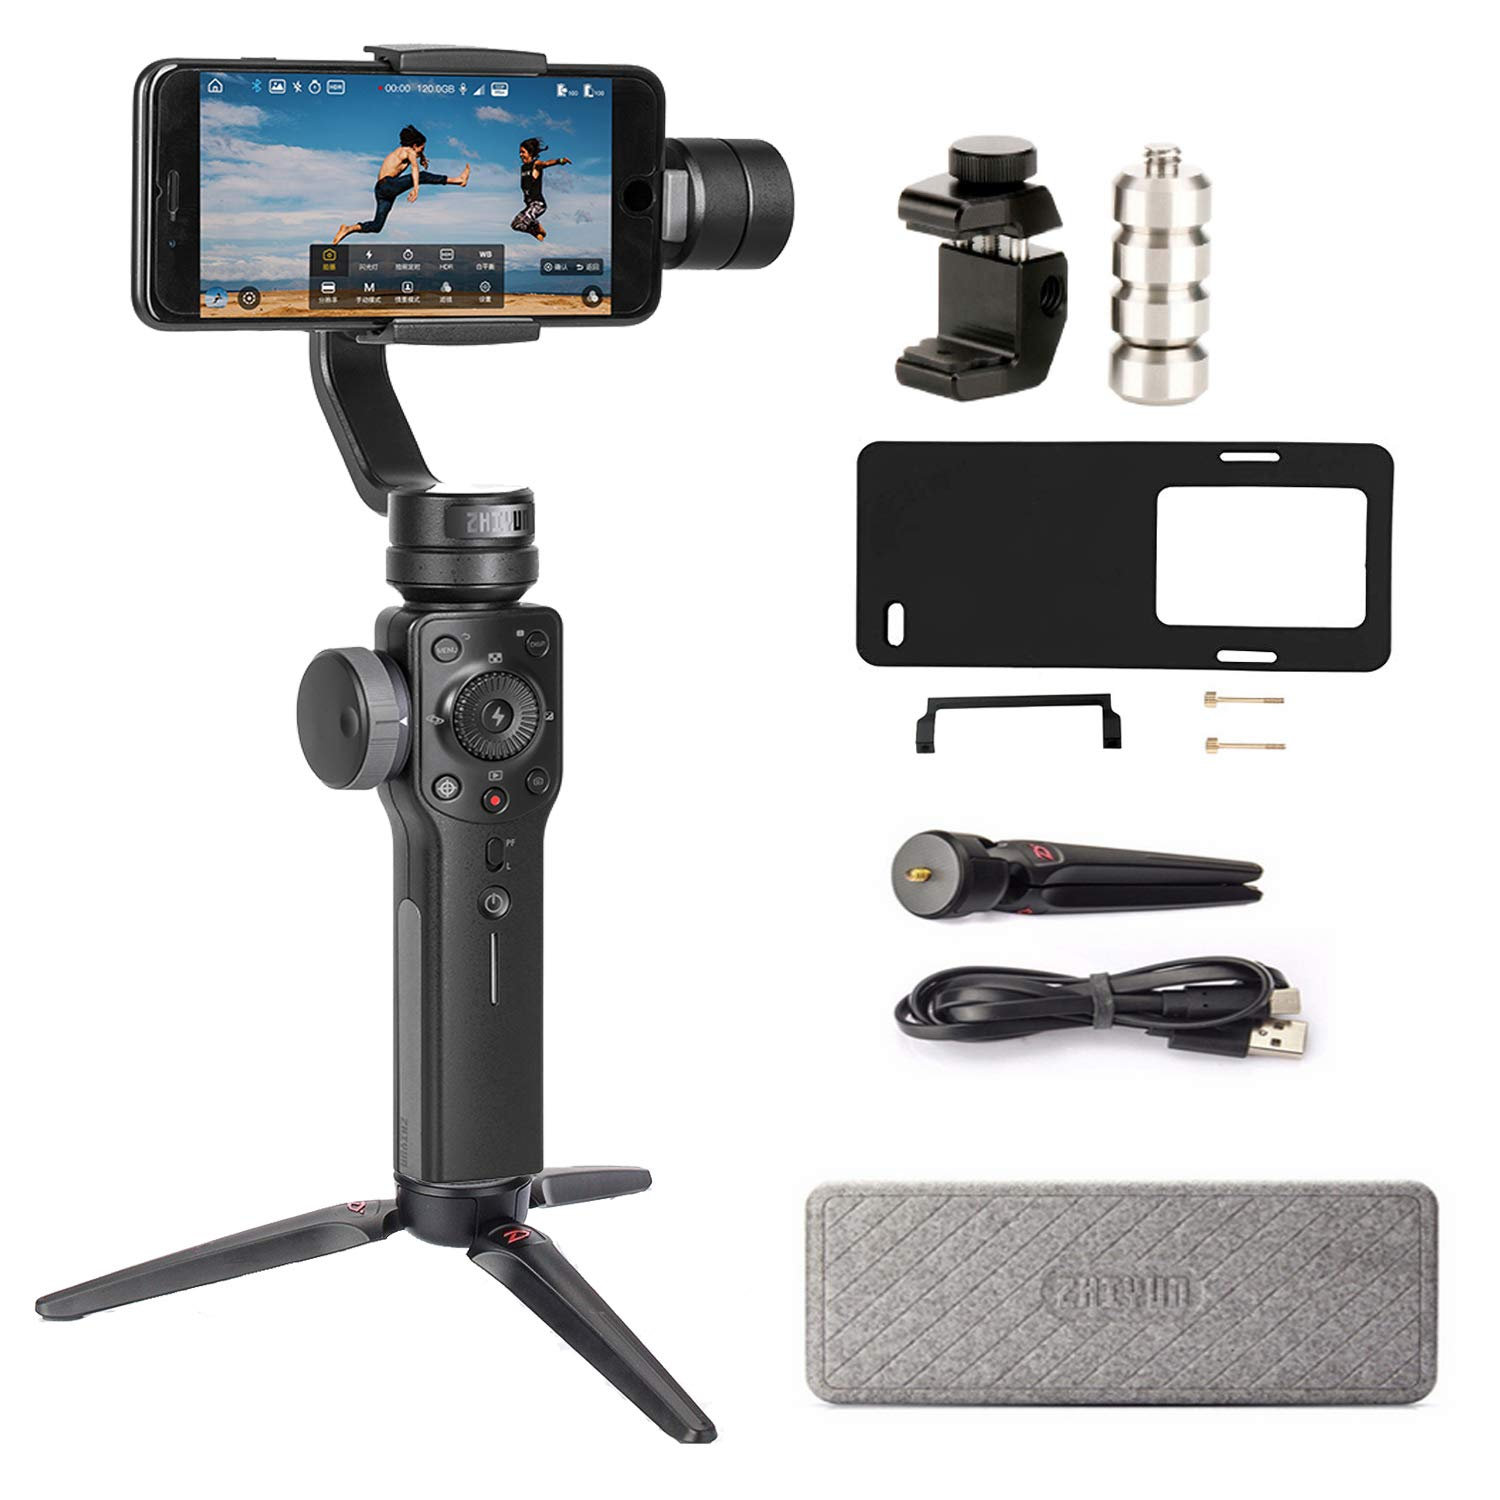 Zhiyun Smooth 4 3-Axis Handheld Gimbal Stabilizer Compatible FiLMiC Pro for iPhone Xs Max/Xs/X/8 Plus/7/SE Samsung Galaxy S9+/S8/S7 etc Smartphones(Gopro Adapter/Charging Cable/Counterweight Included) by zhi yun